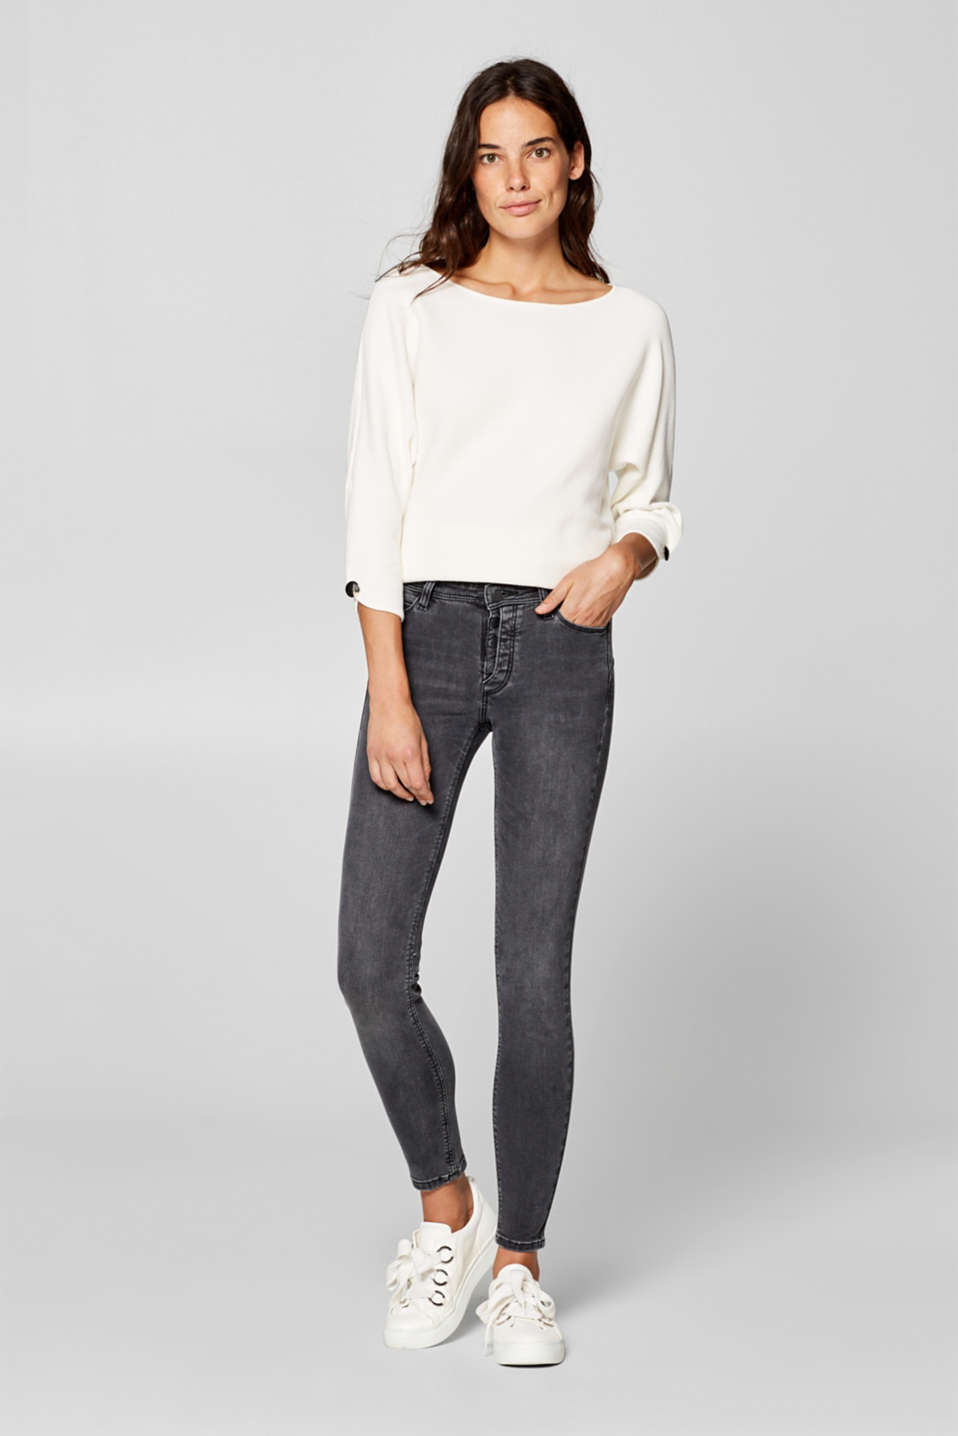 Esprit - Stretch jeans with a half concealed button placket